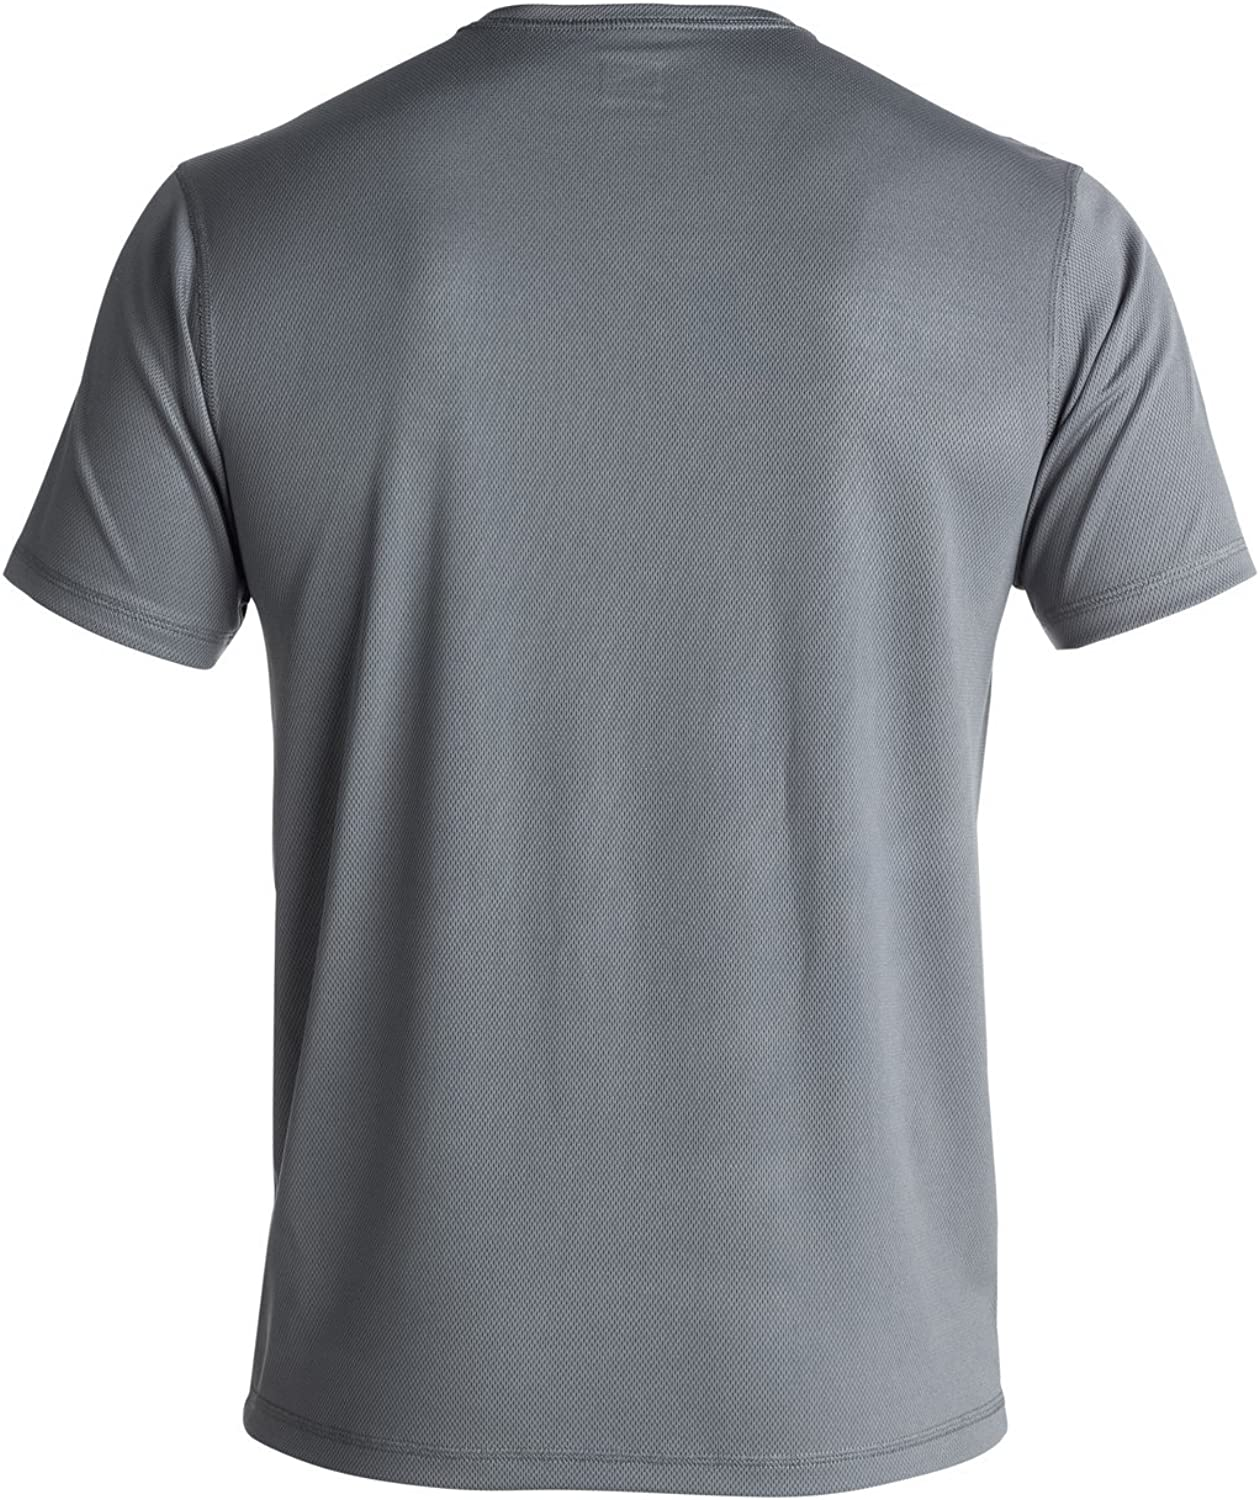 QUIKSILVER Mens Gut Check Ss Surf Tee